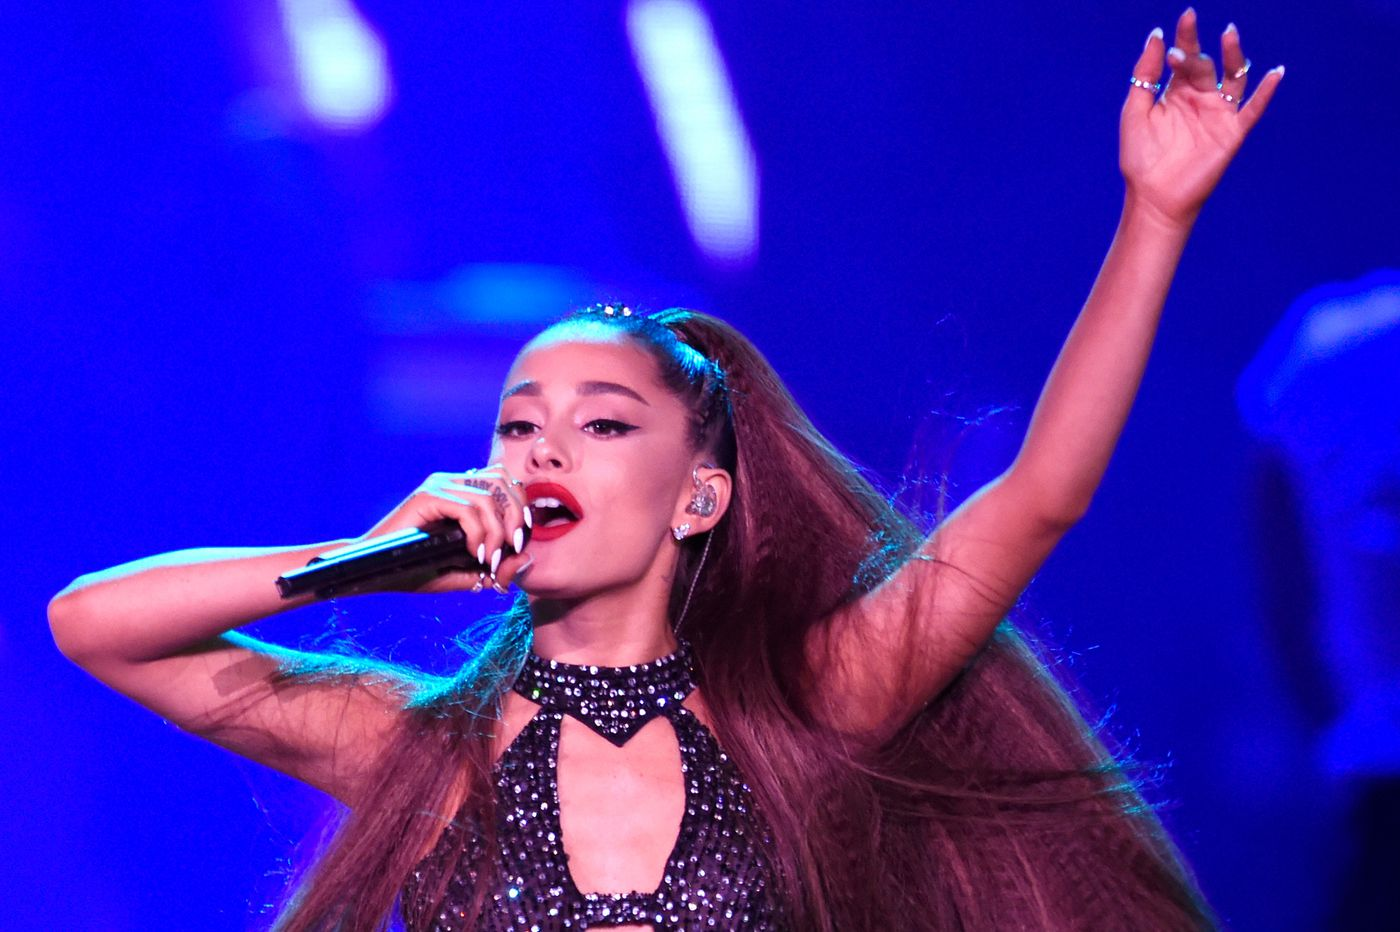 The biggest concerts coming to Philadelphia, with Ariana Grande, the Rolling Stones, Cher, Meek Mill, Mott the Hoople, and more